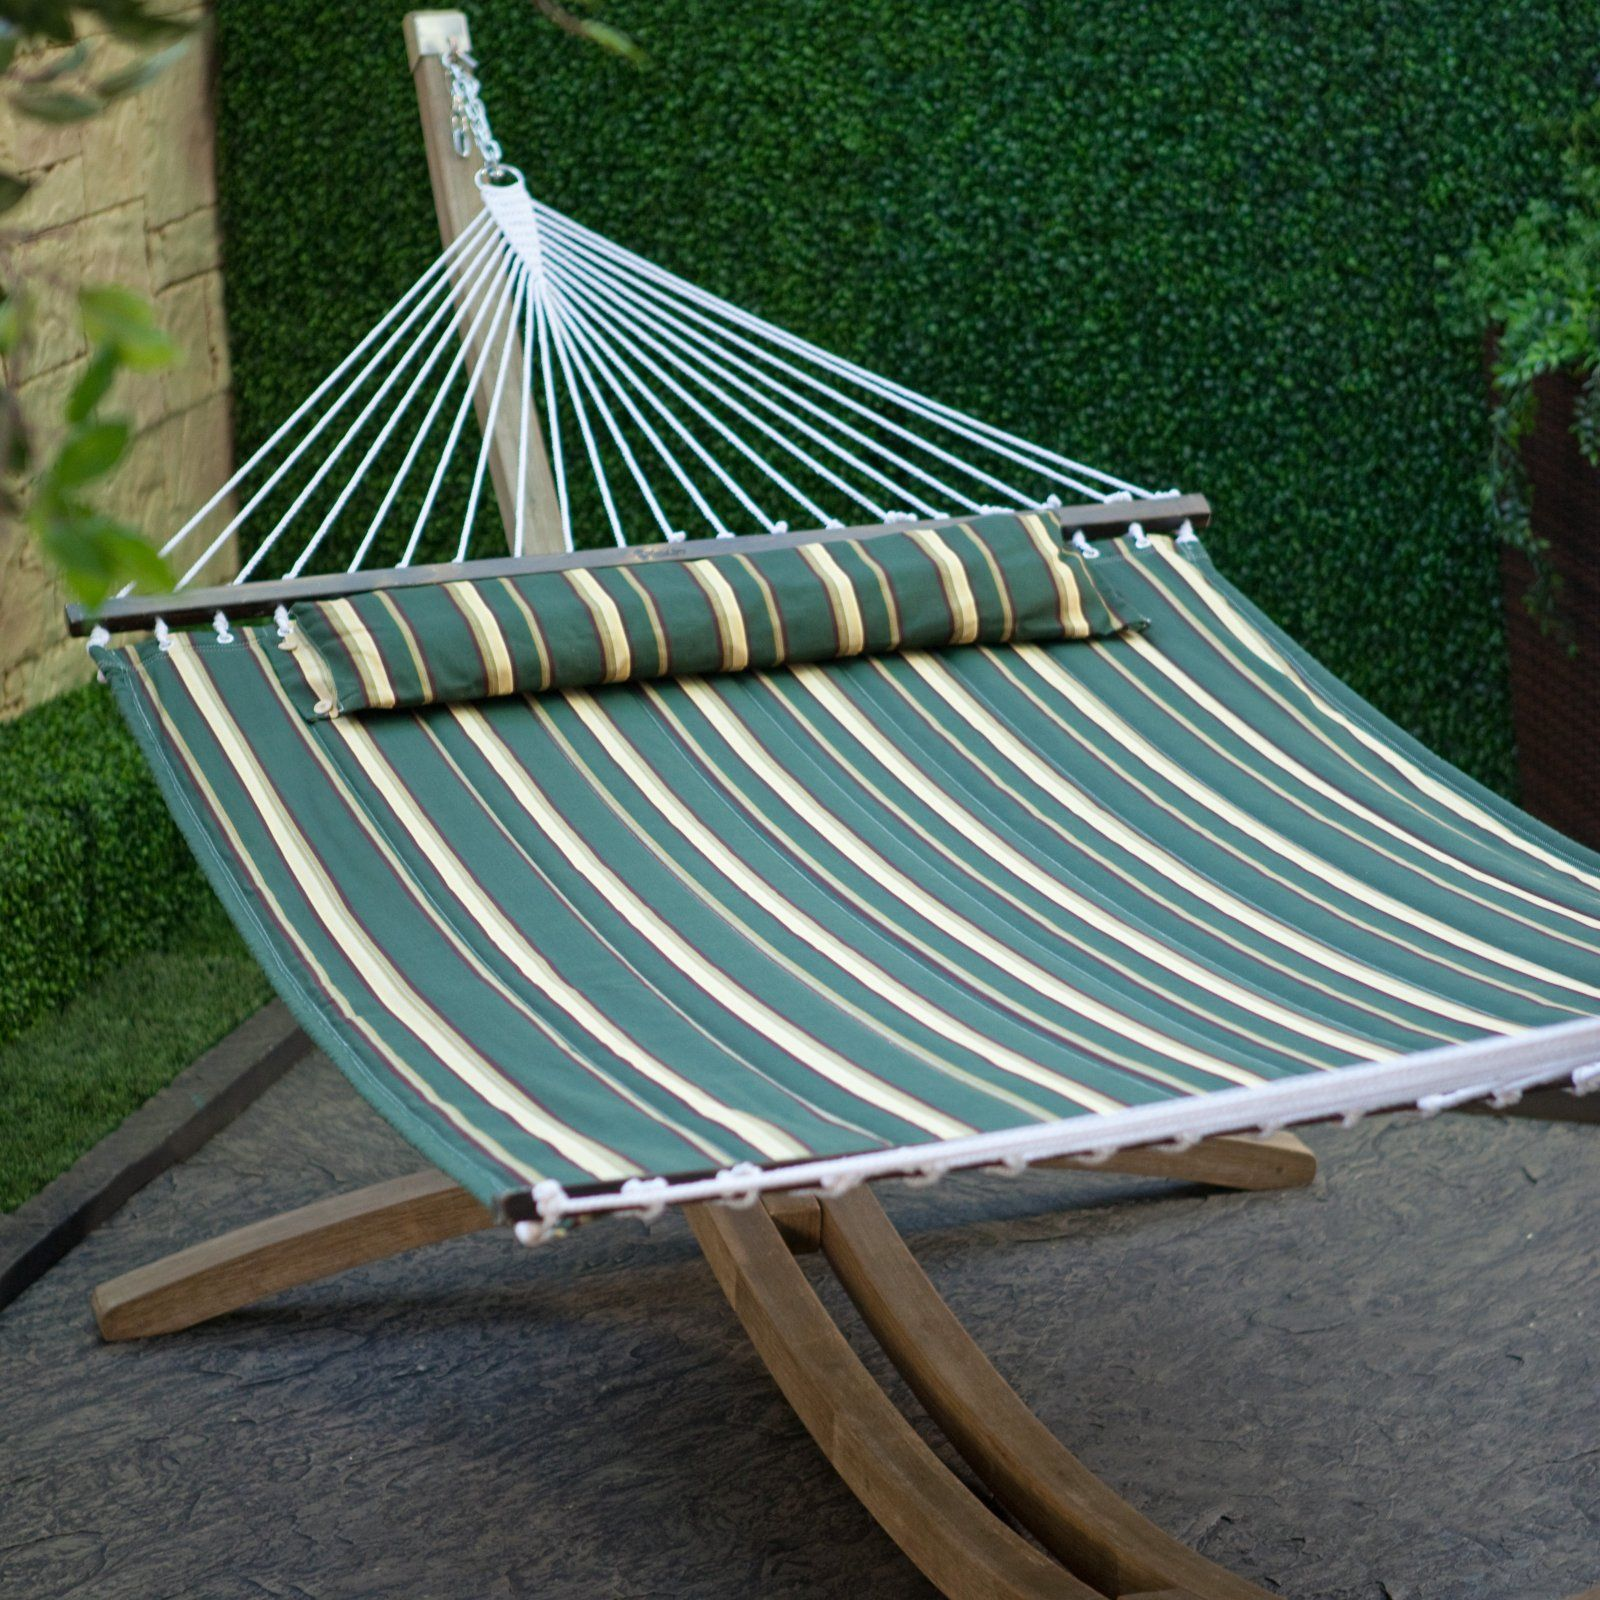 Island bay seagrass quilted hammock for the home pinterest